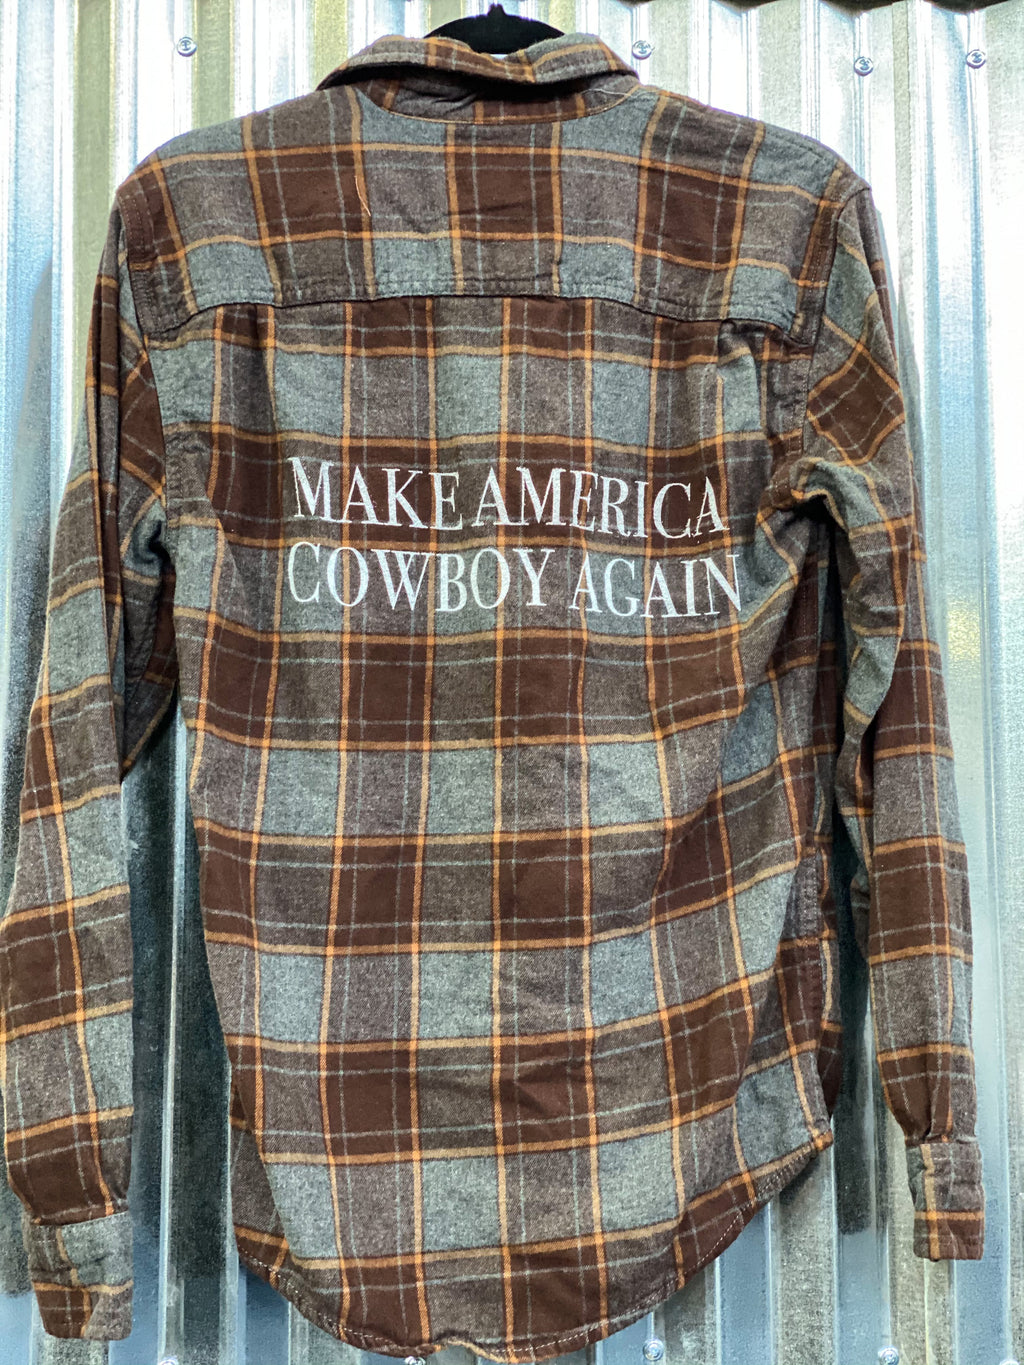 Make America Cowboy Again Flannel- Rustic brown